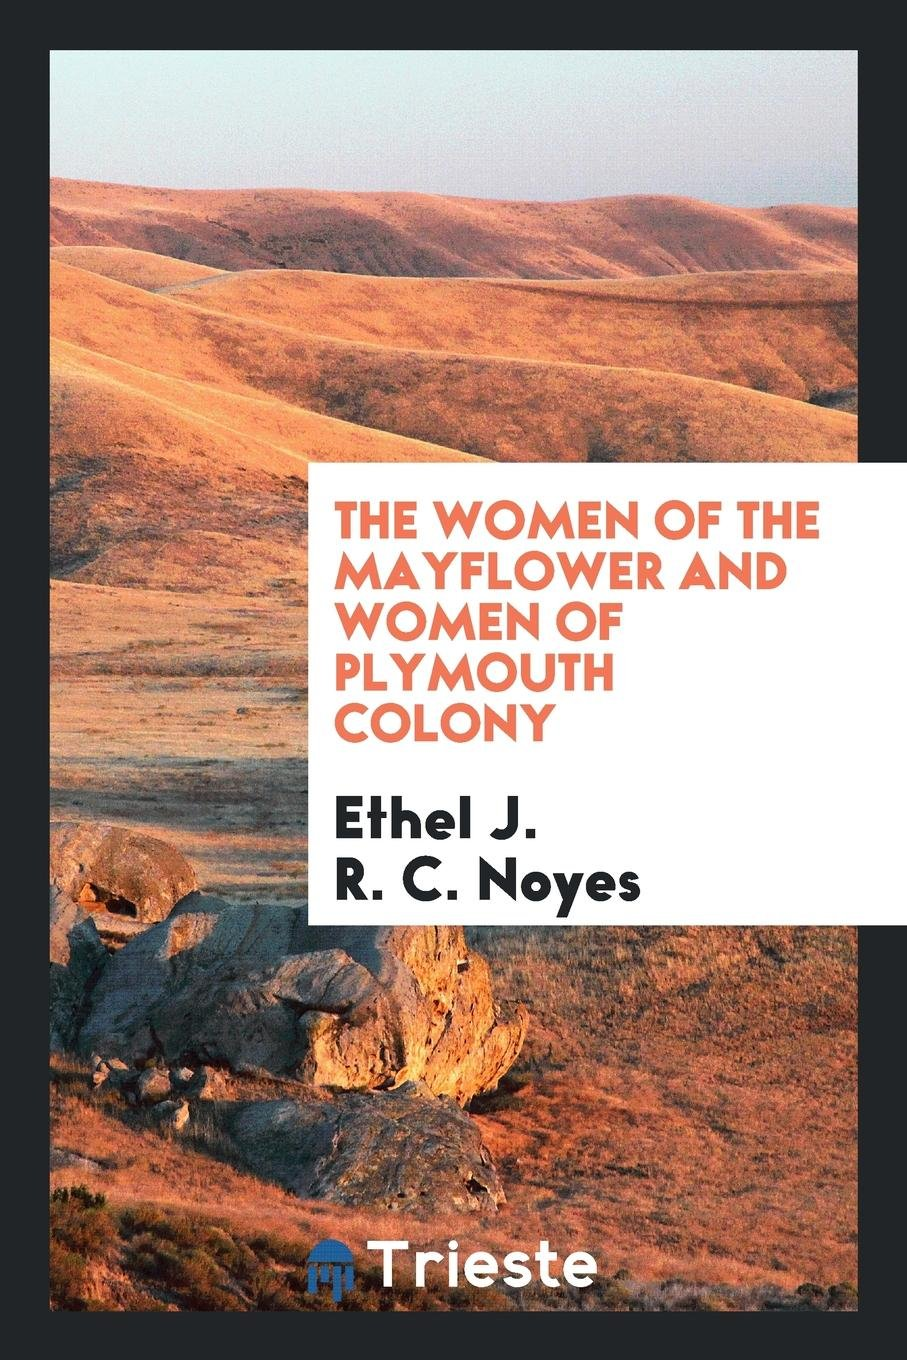 The women of the Mayflower and women of Plymouth colony: Ethel J. R. C.  Noyes: 9790649283537: Amazon.com: Books